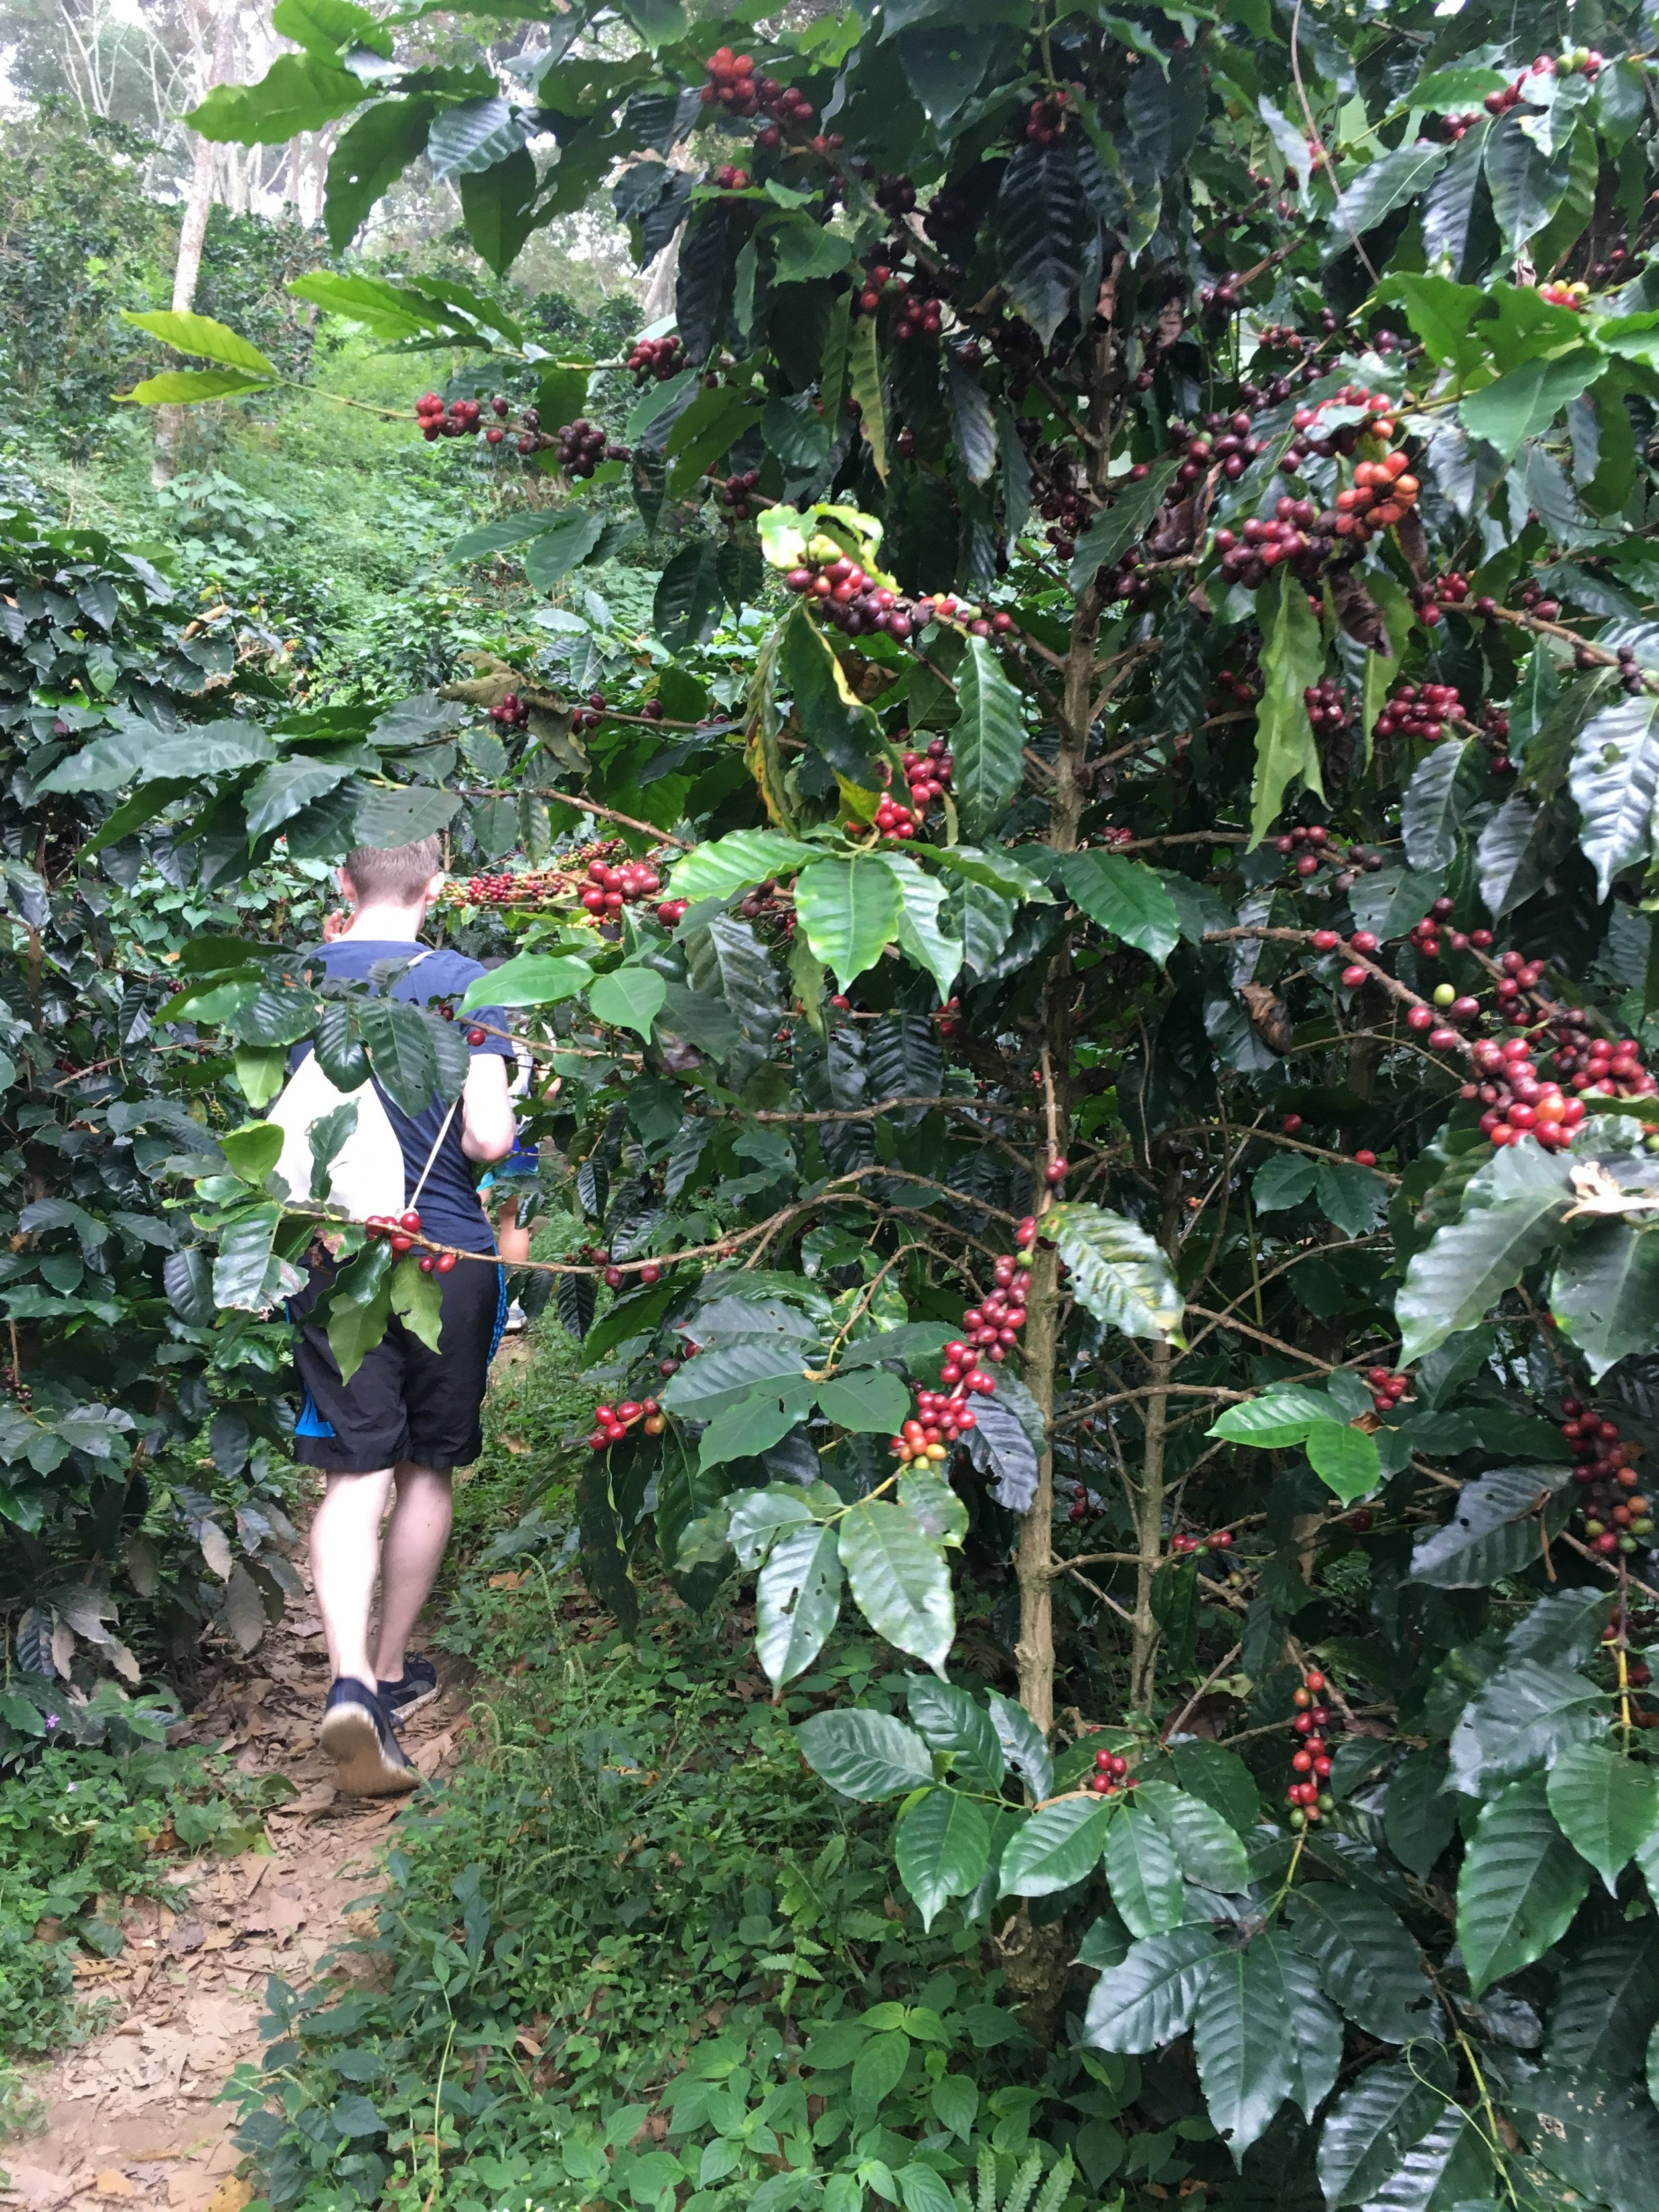 Walking through thick brushes of coffee plants